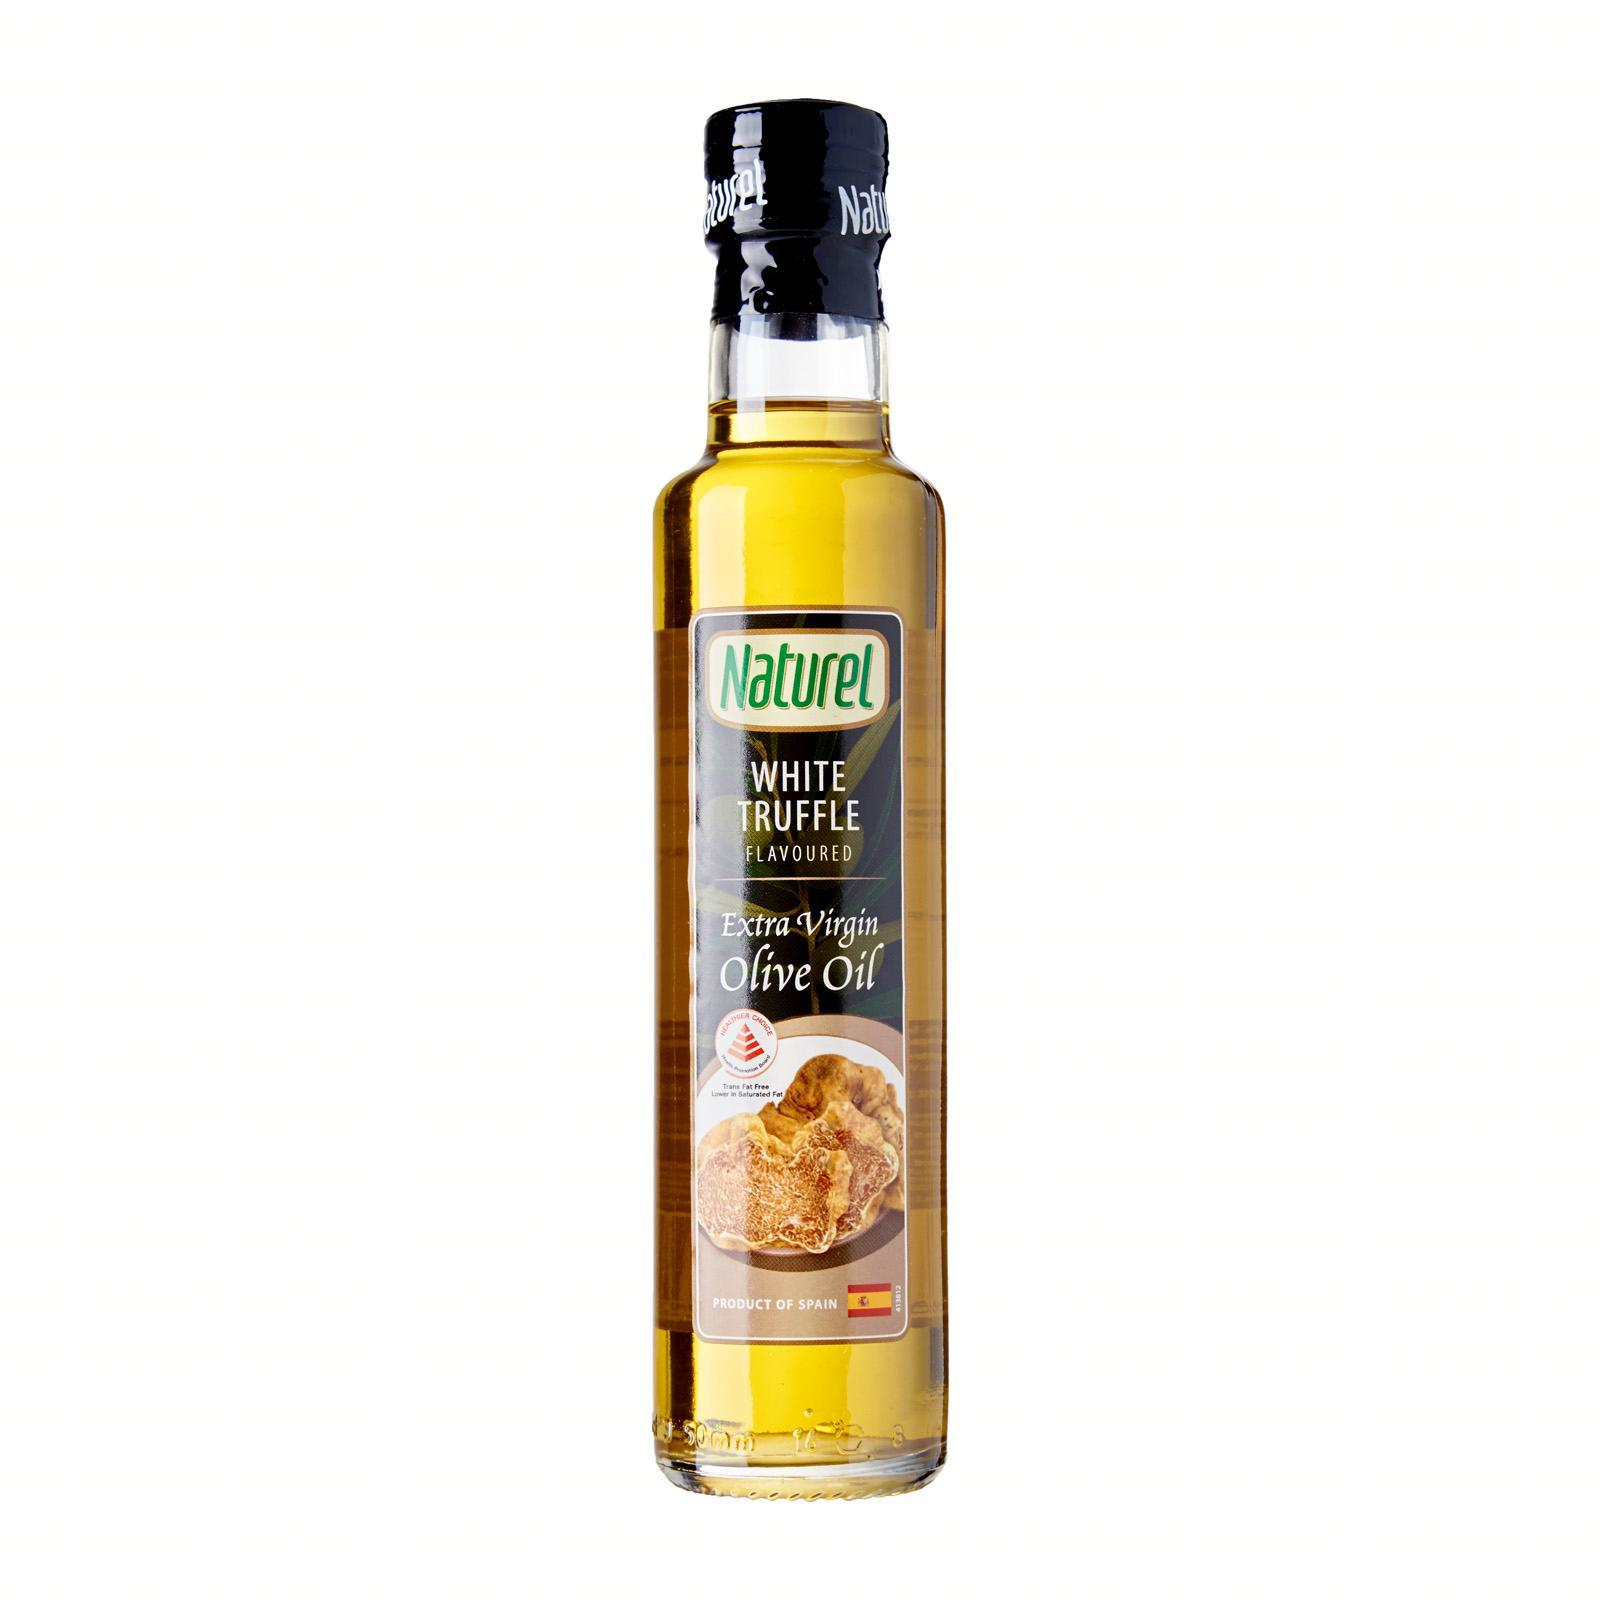 Naturel Extra Virgin Olive Oil - White Truffle Flavoured